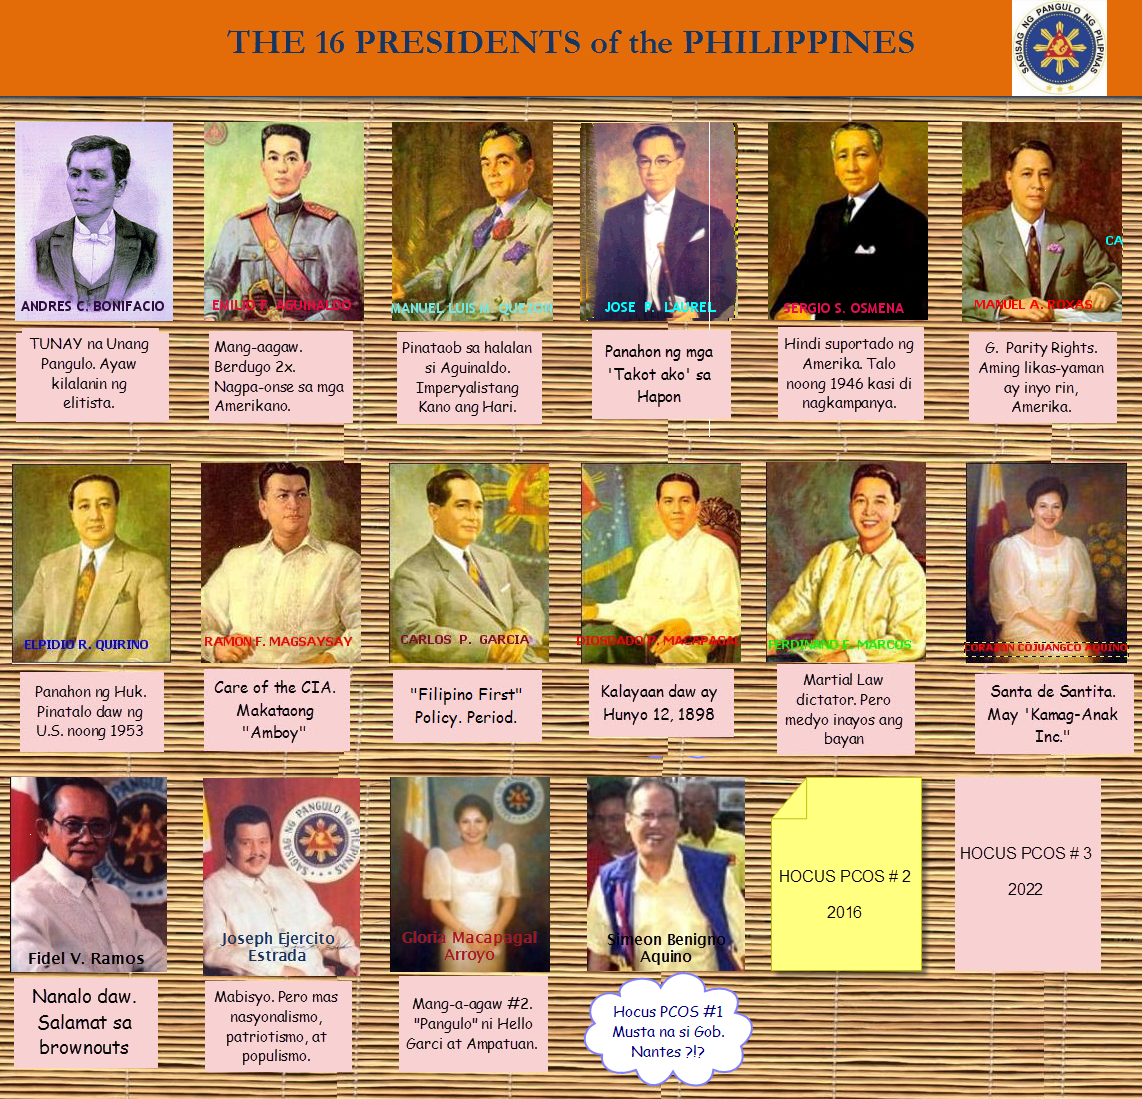 "presidents of the philippines The president is directly elected by qualified voters of the population to a six-year term and must be ""a natural-born citizen of the philippines, a registered voter, able to read and write, at least forty years of age on the day of the election, and a resident of the philippines for at least ten years immediately preceding such election."